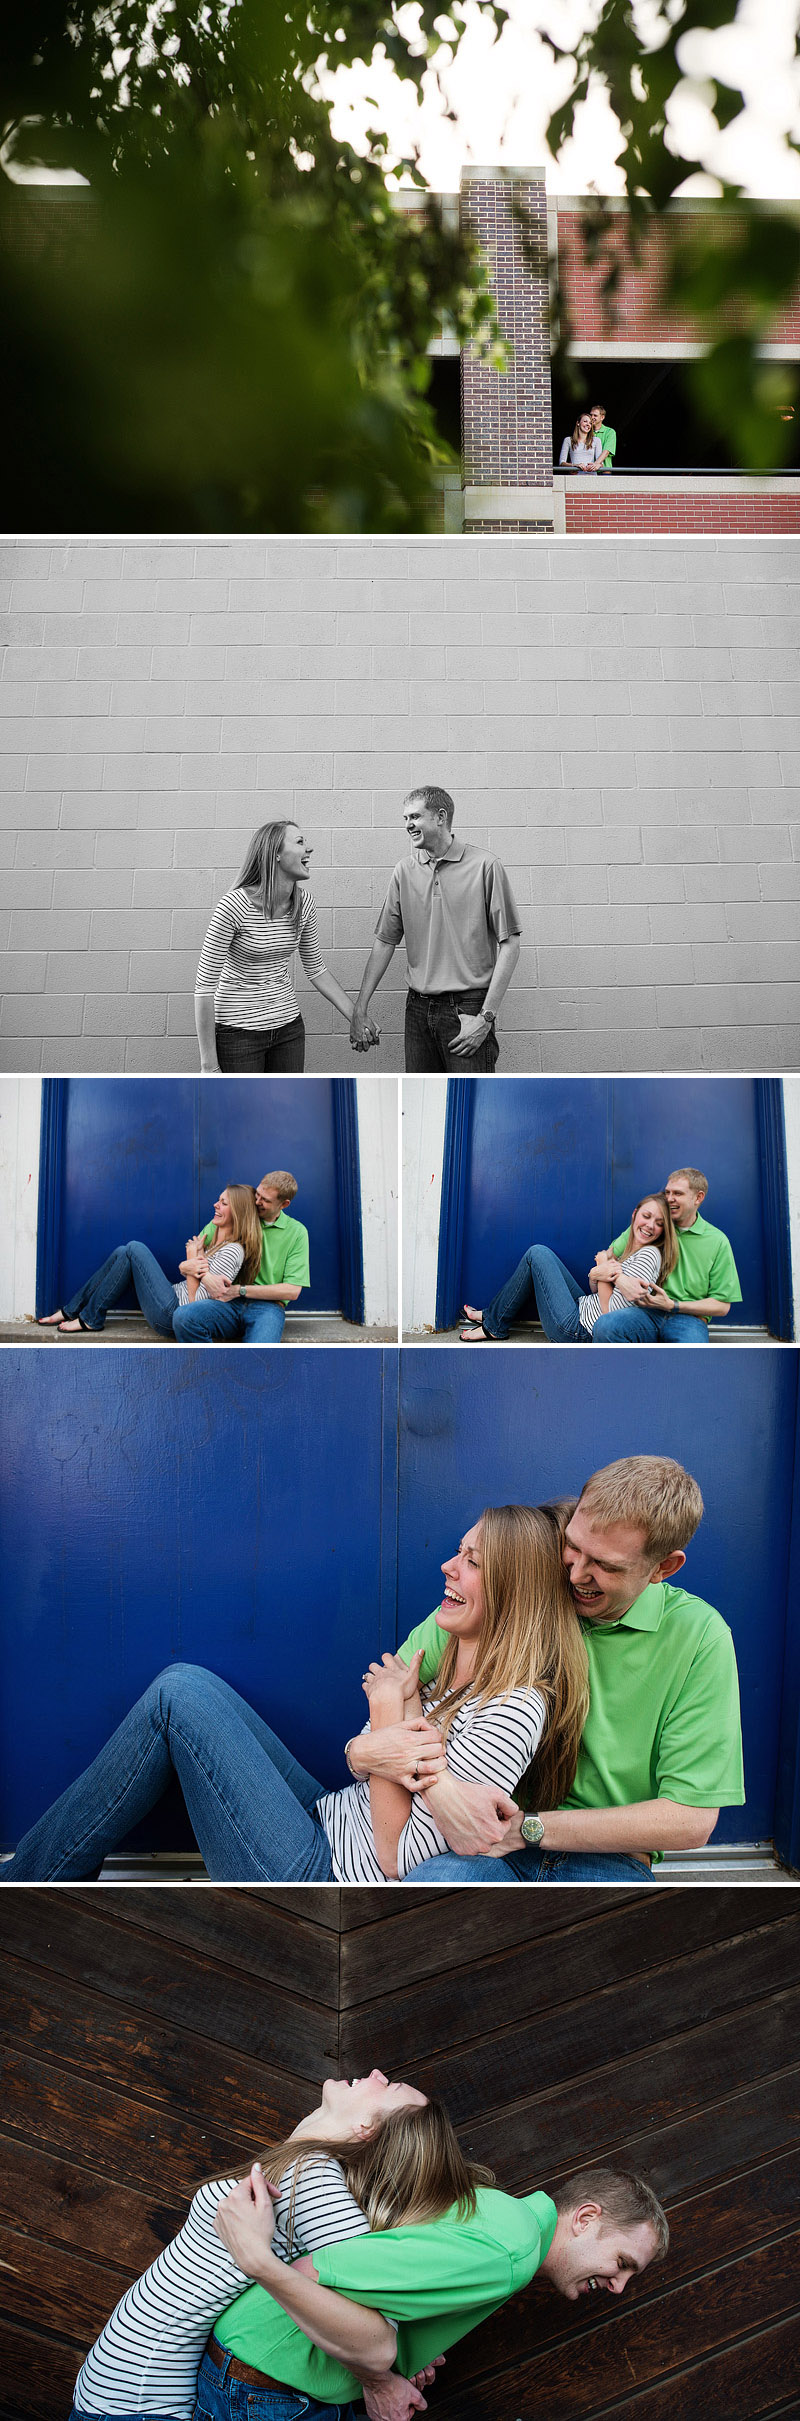 Cute engagement pictures on Mass Street in Lawrence